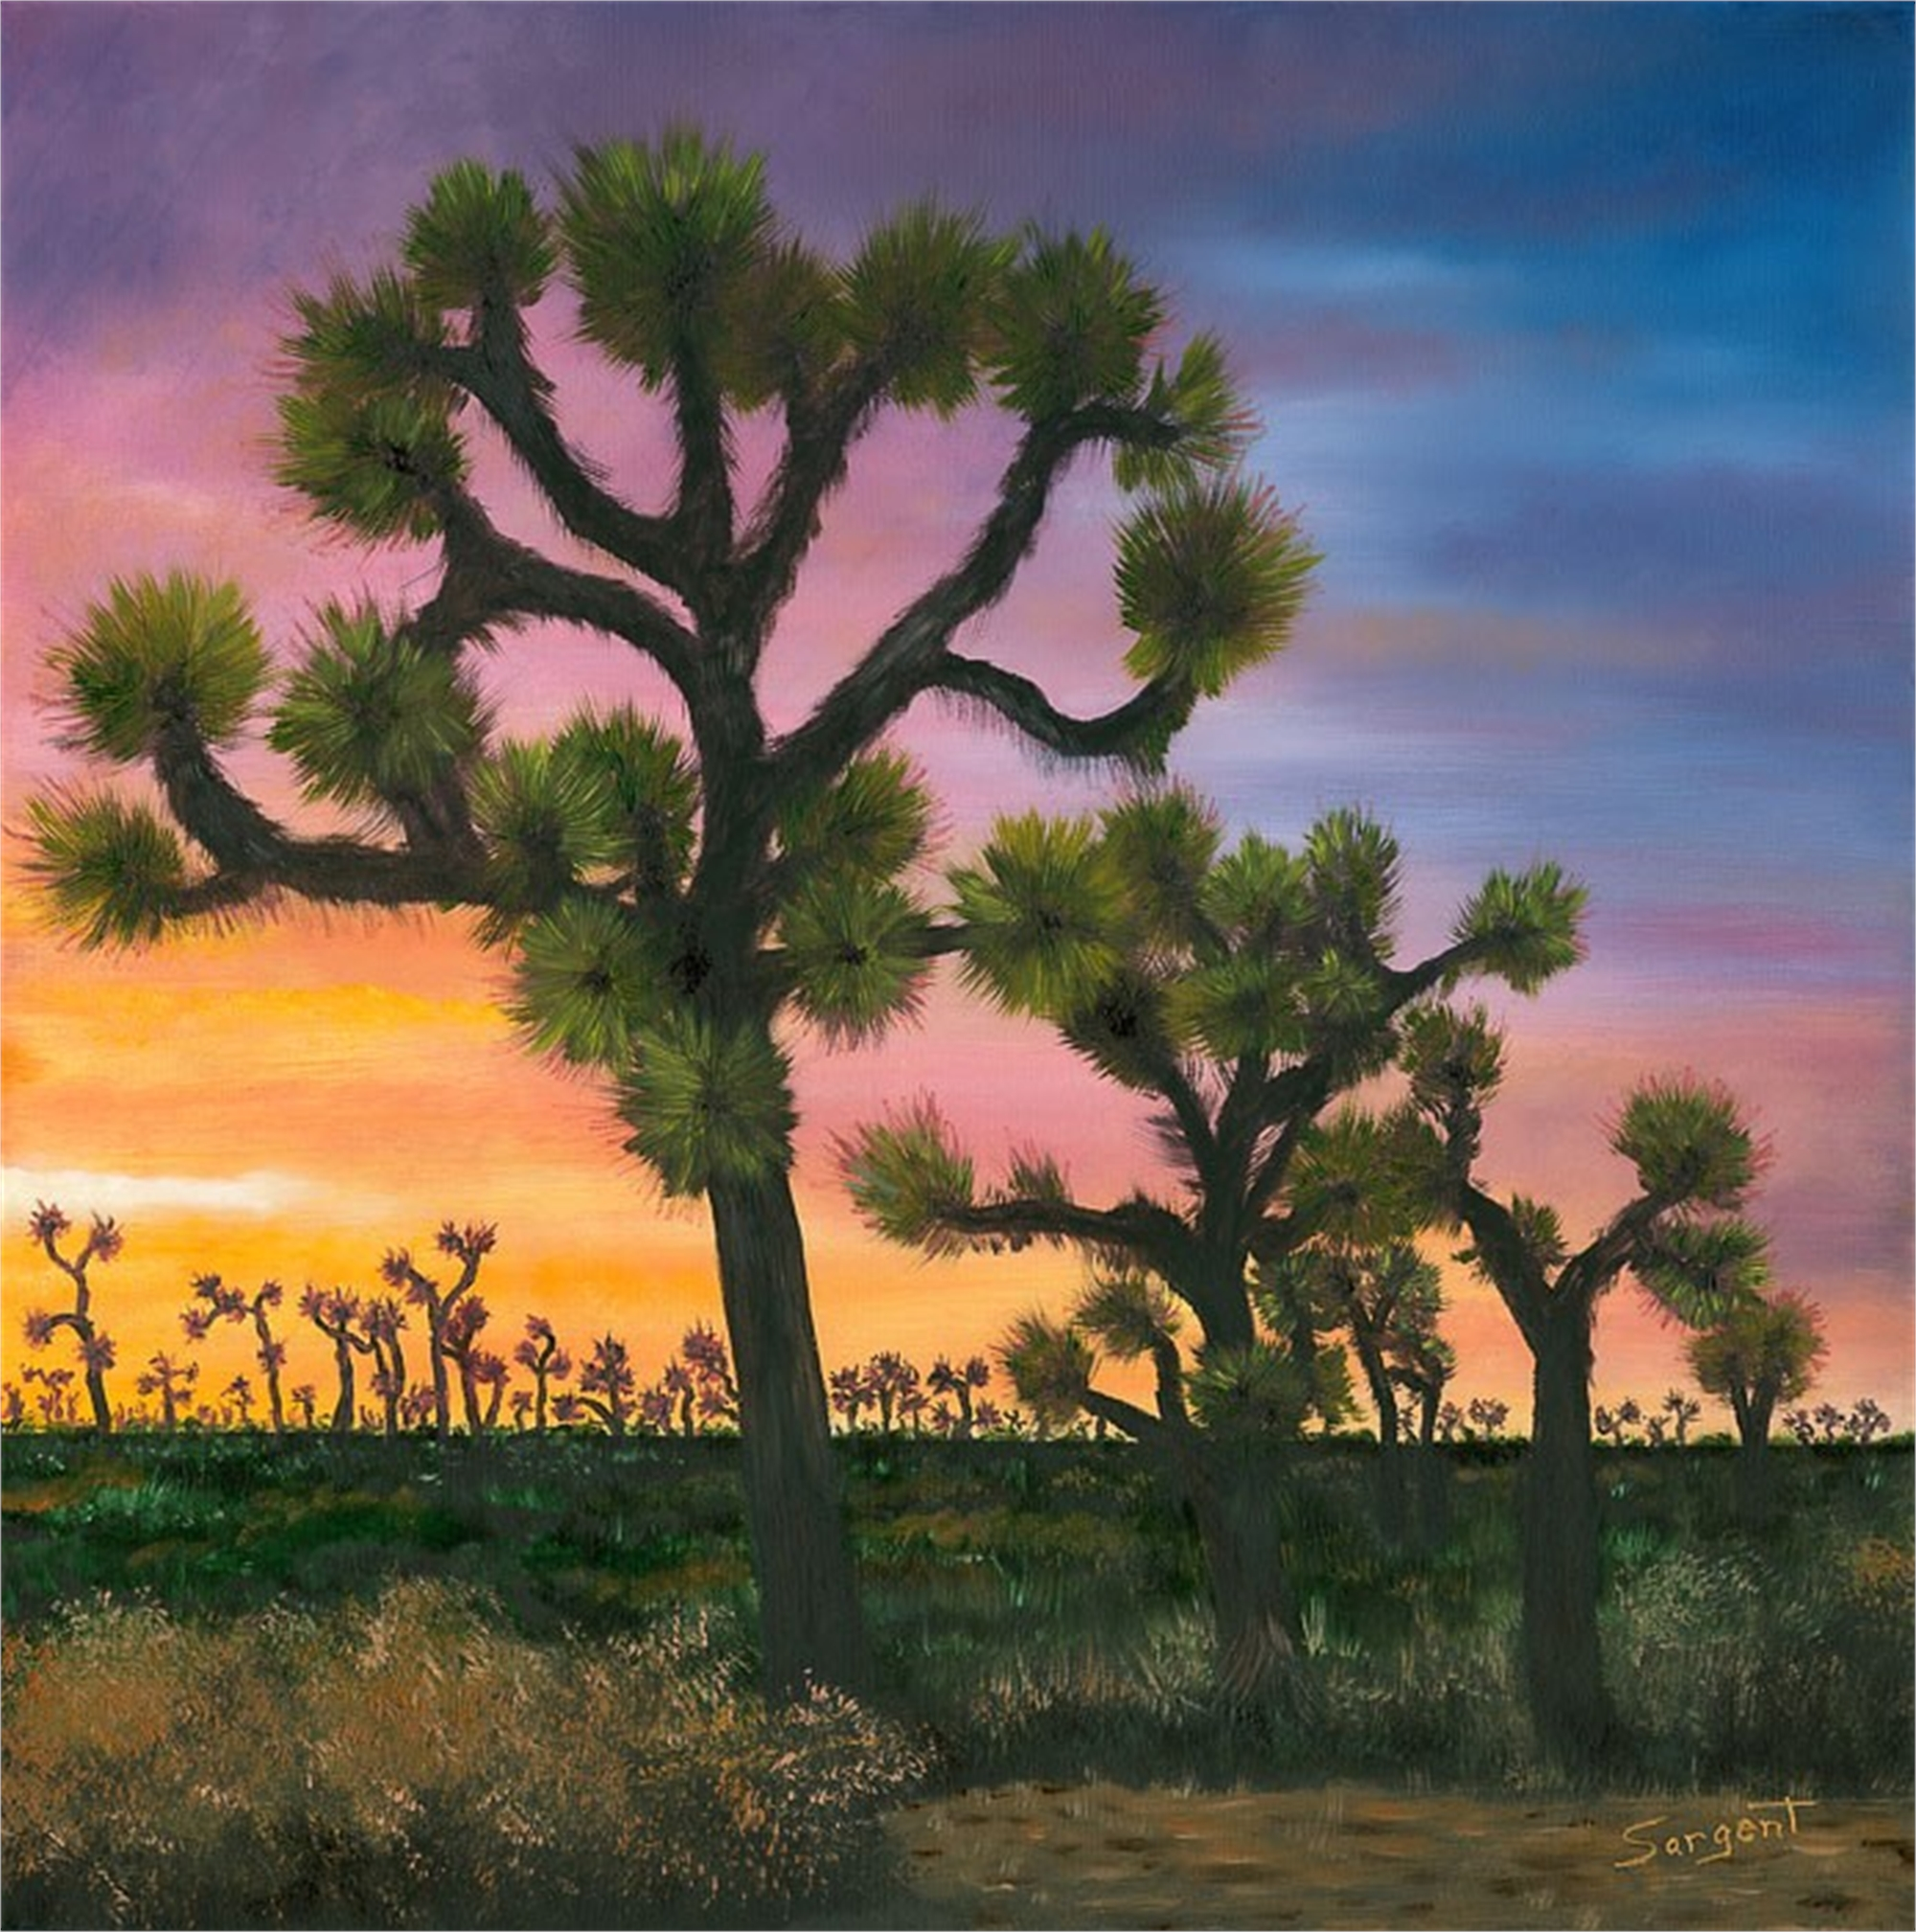 The Joshua Tree by Phil Sargent (Canby, OR)